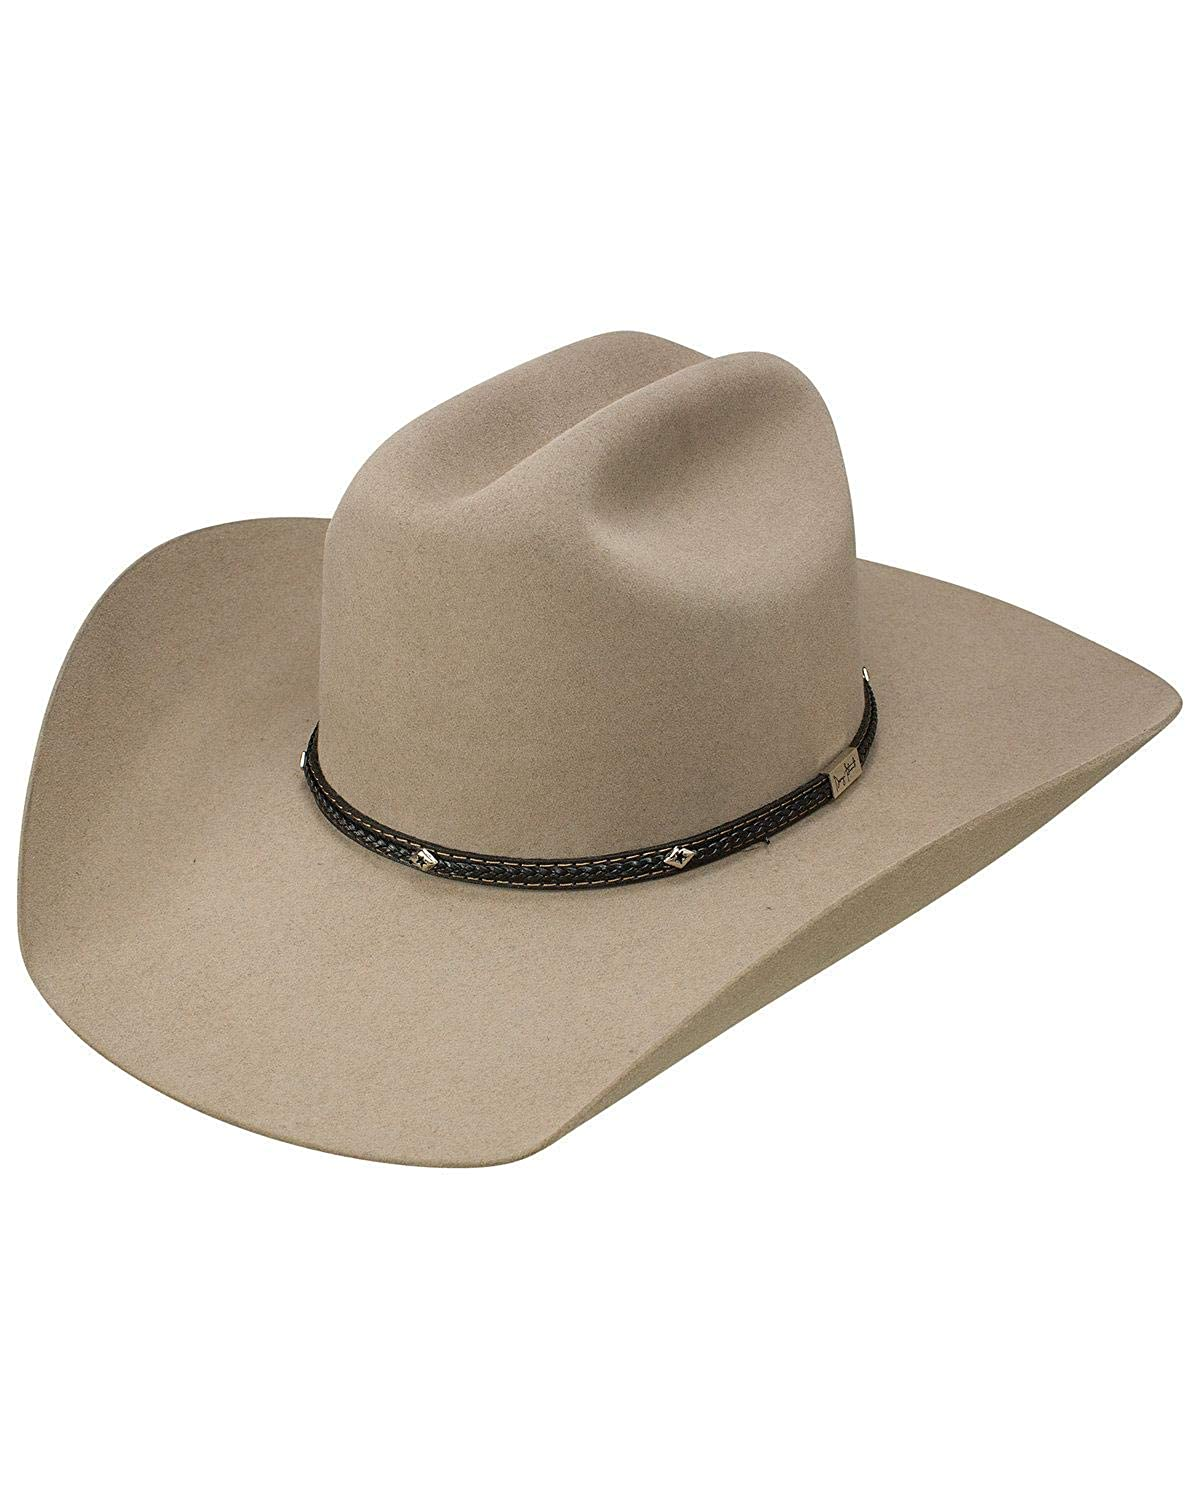 Resistol Men s George Strait by Hollister 6X Felt Cowboy Hat Tan 6 7 8 at Amazon  Men s Clothing store  12d39bfc8e75